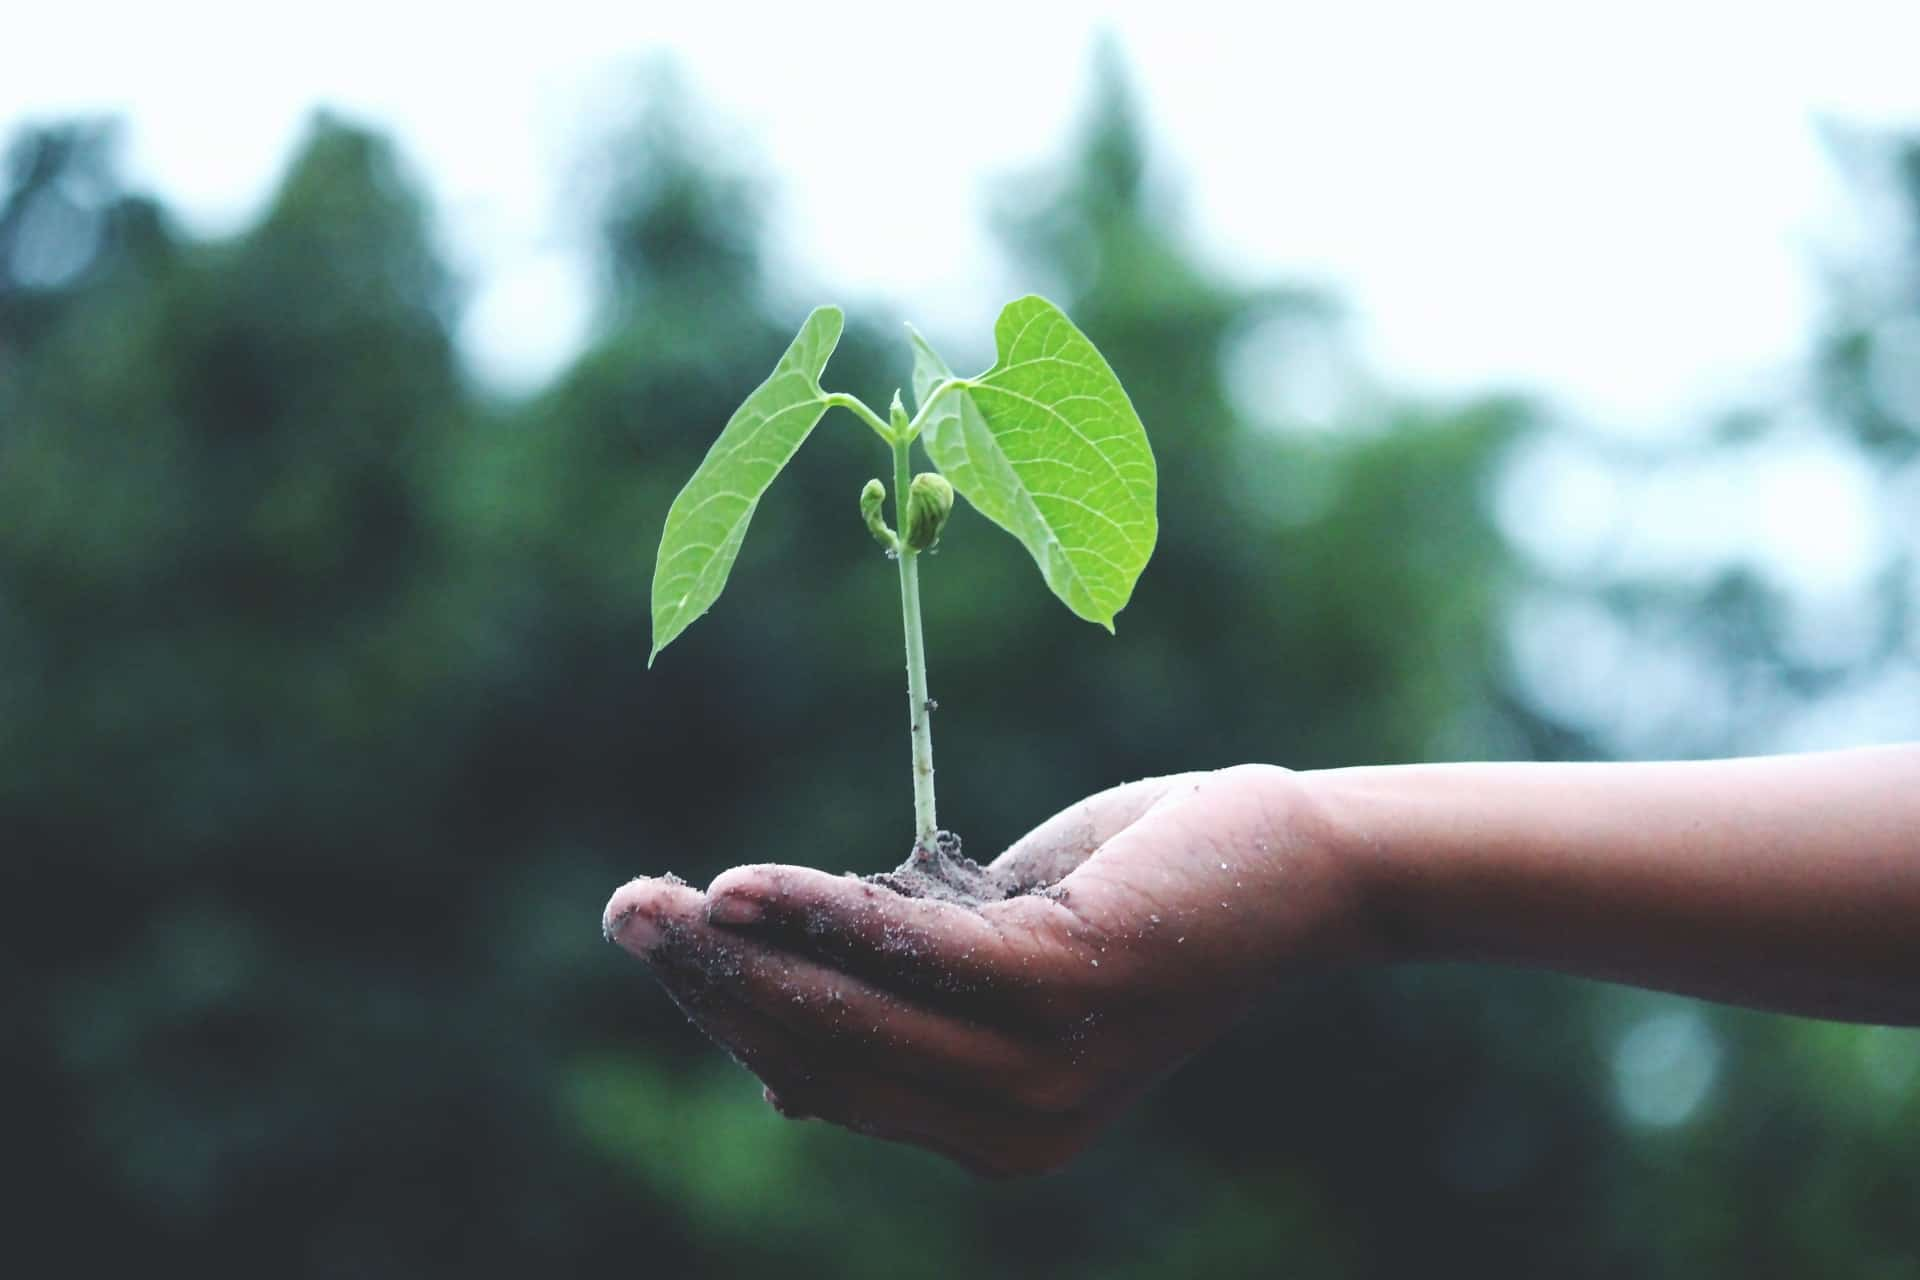 person's hand holding a small plant seedling with soil with trees in the background